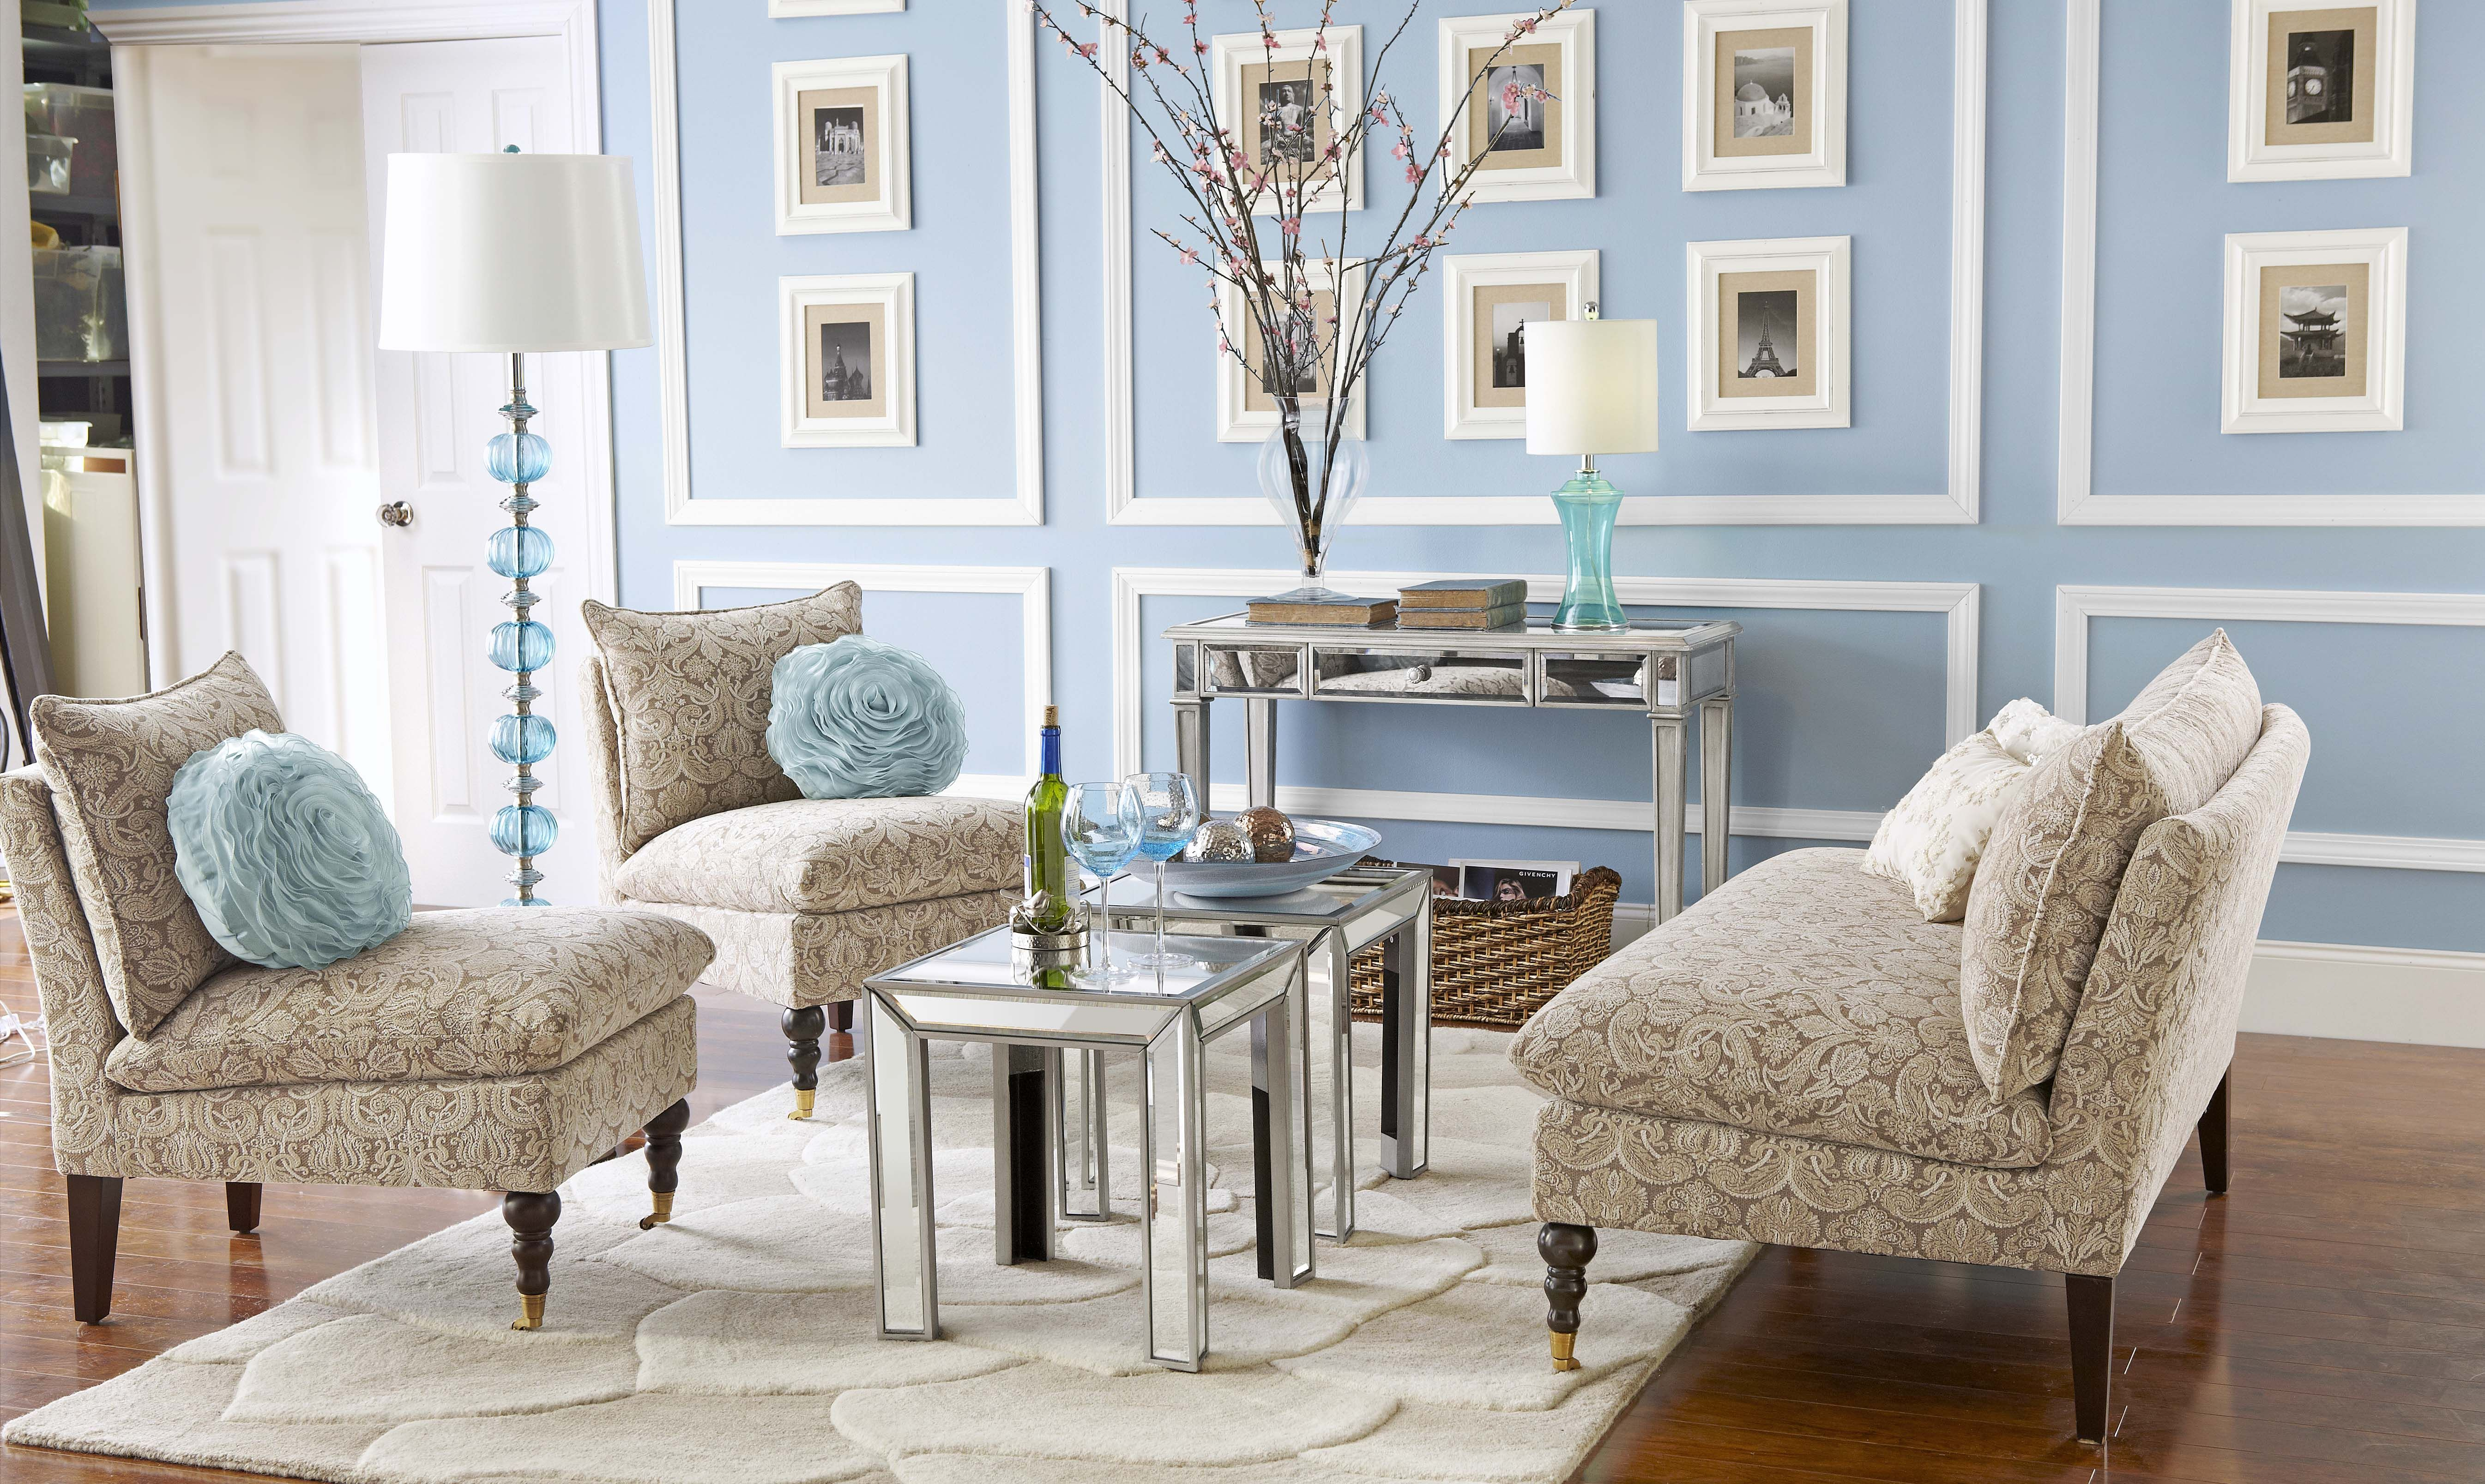 glamorous pier one living room | Pier 1 Hayworth Living Room. I love how the pillows and ...